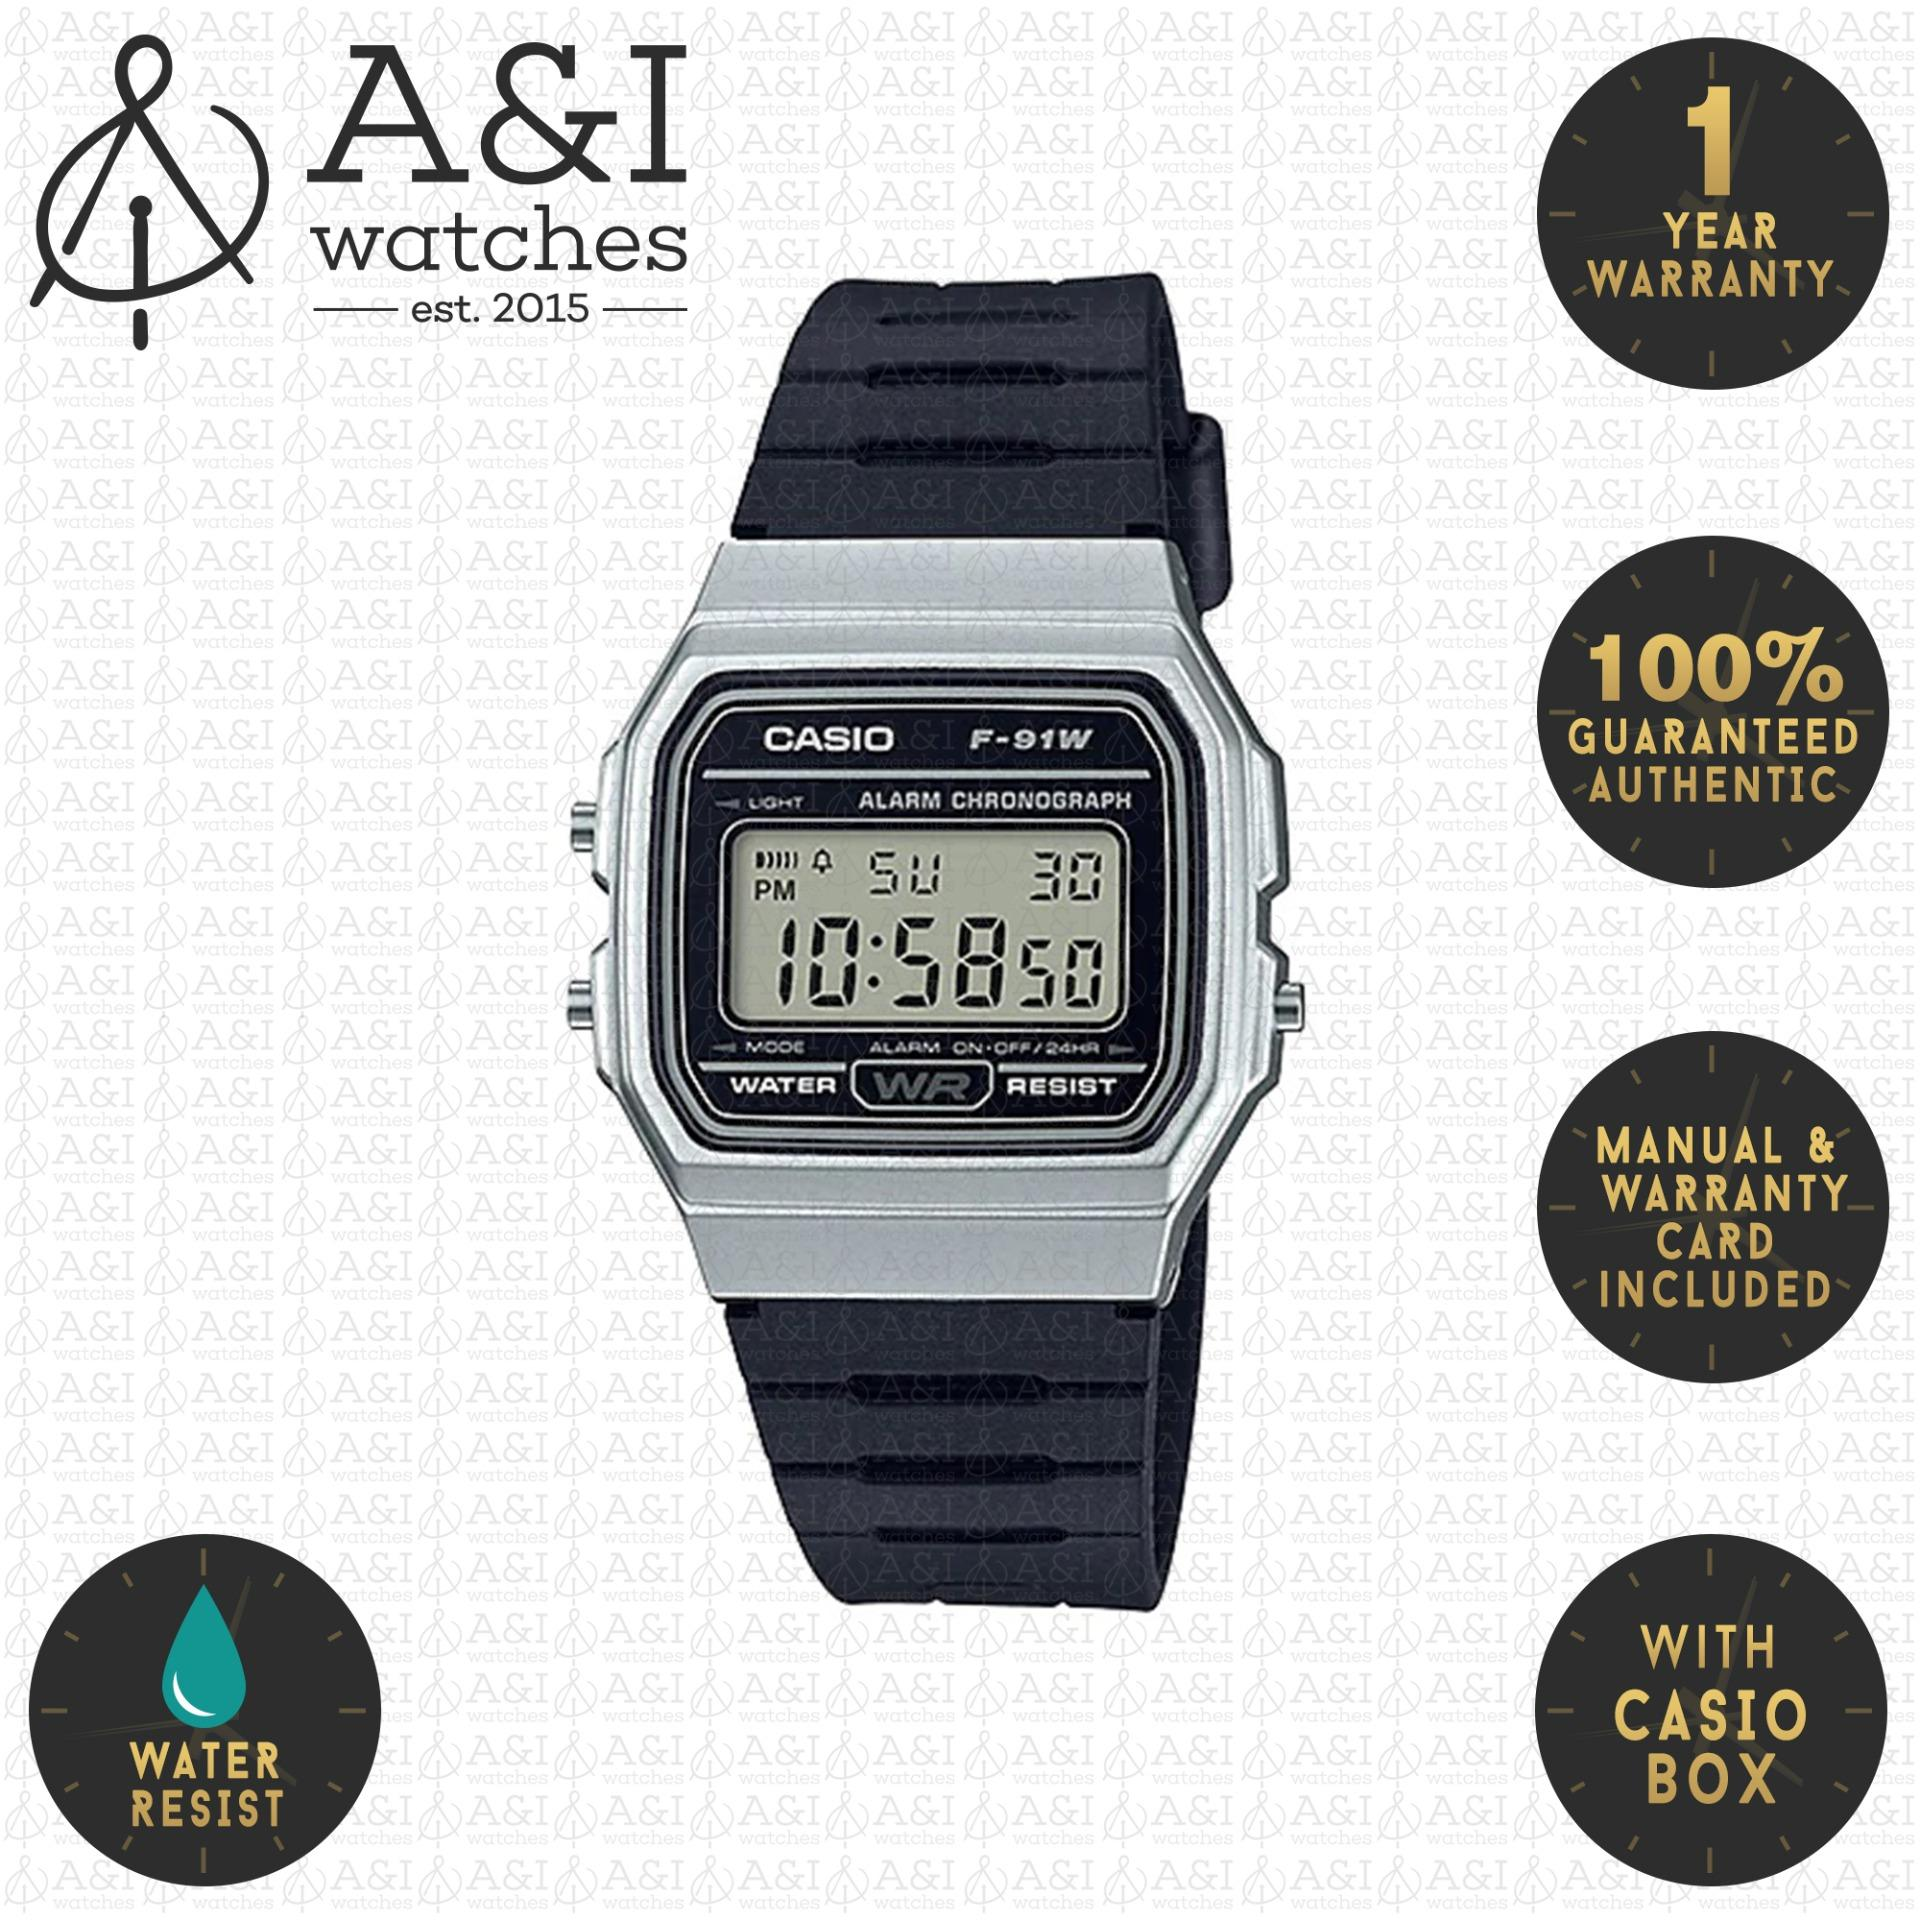 718e3052ac90 Casio Philippines - Casio Watches for sale - prices   reviews